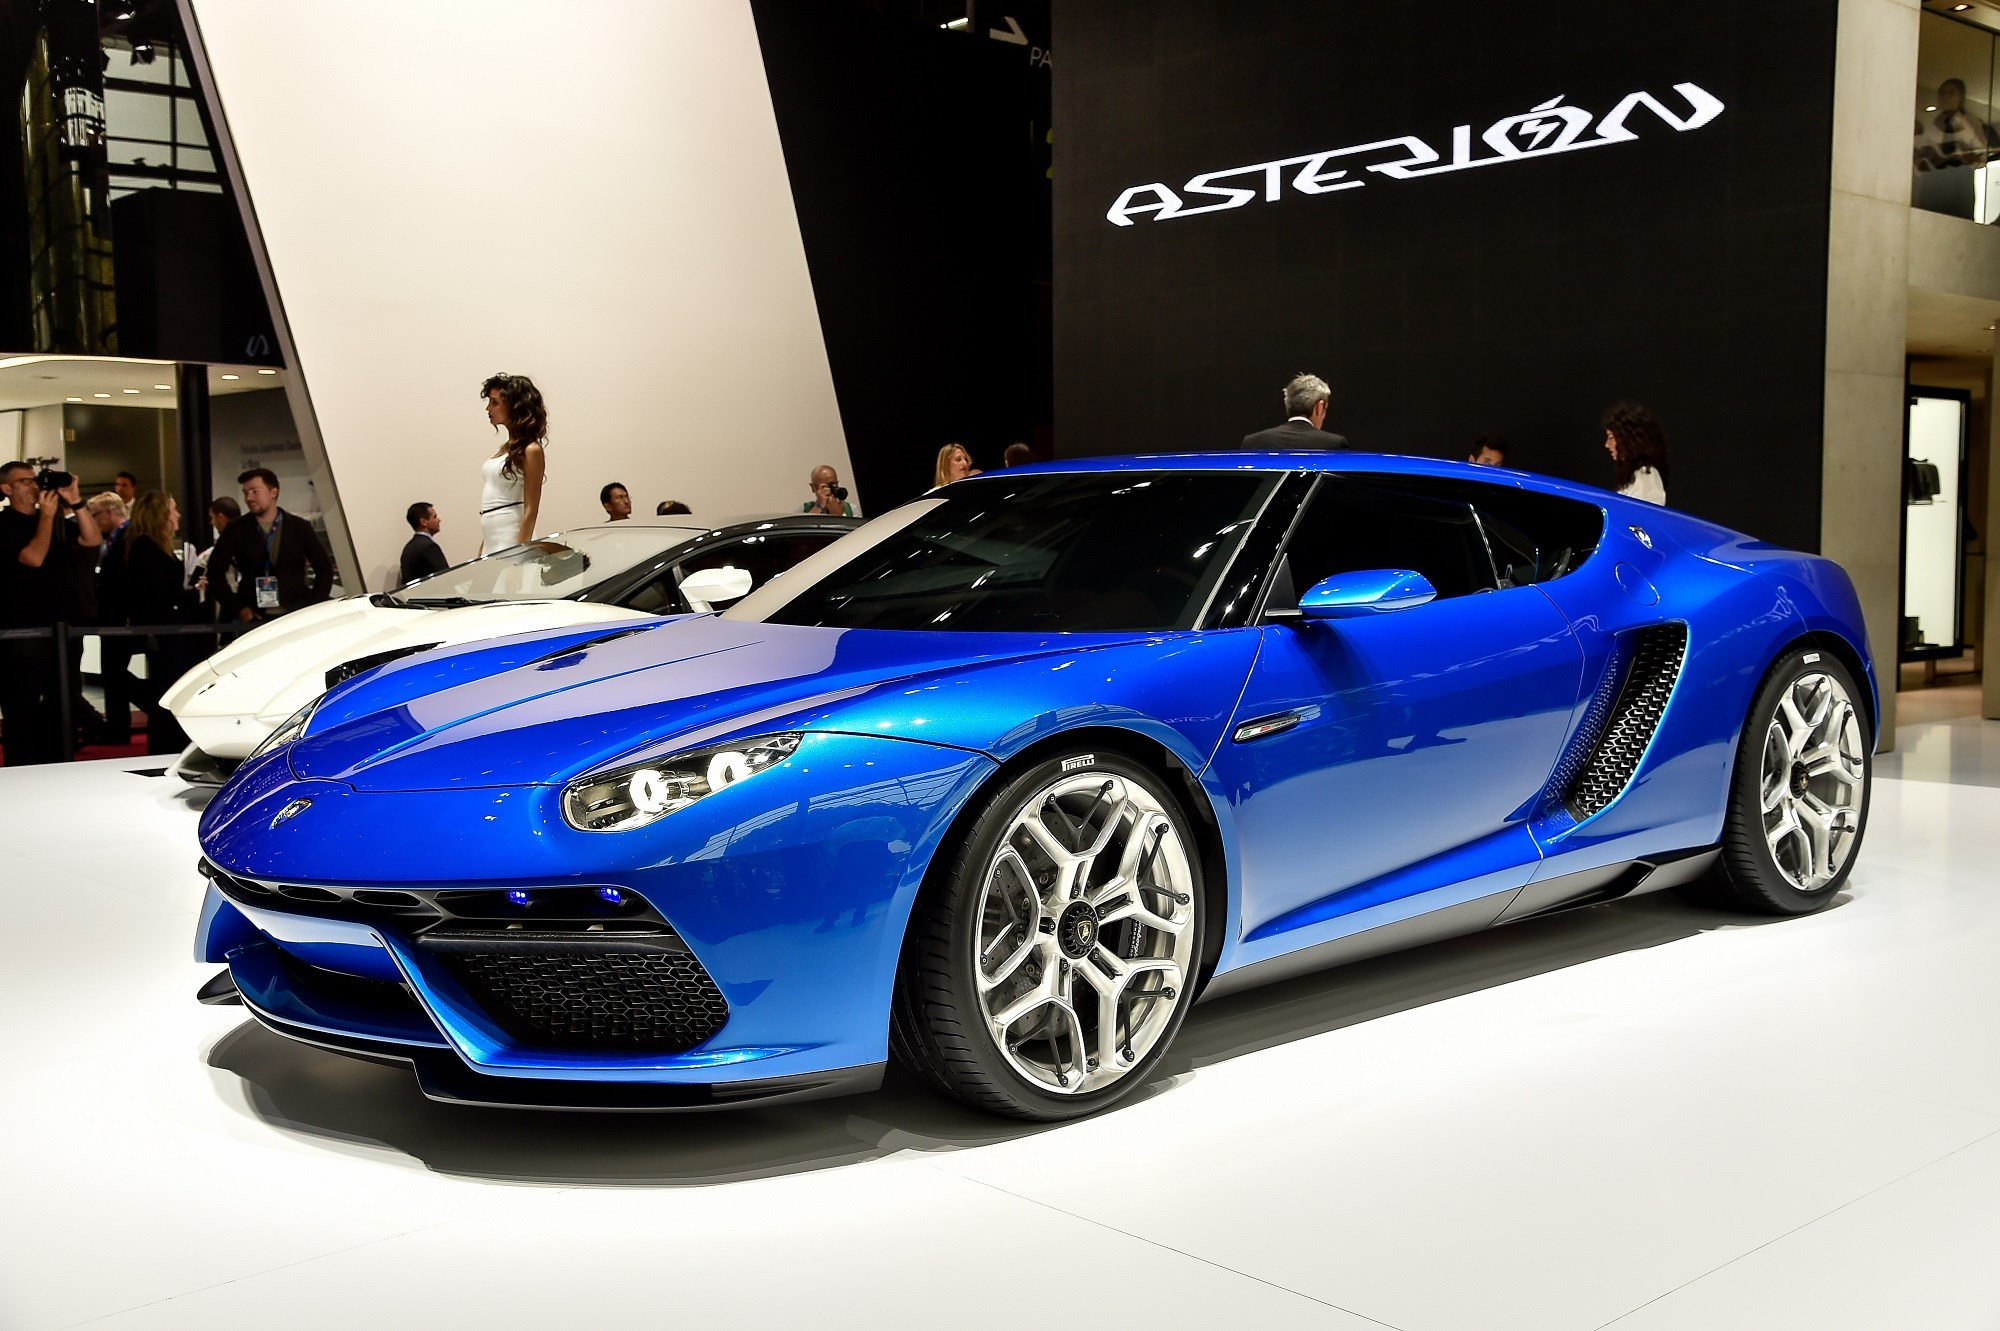 The Lights And Vents Are Angular, But The Shoulders Are Soft And Surfaces  Clean On The Lamborghini Asterion Lamborghini Design ...